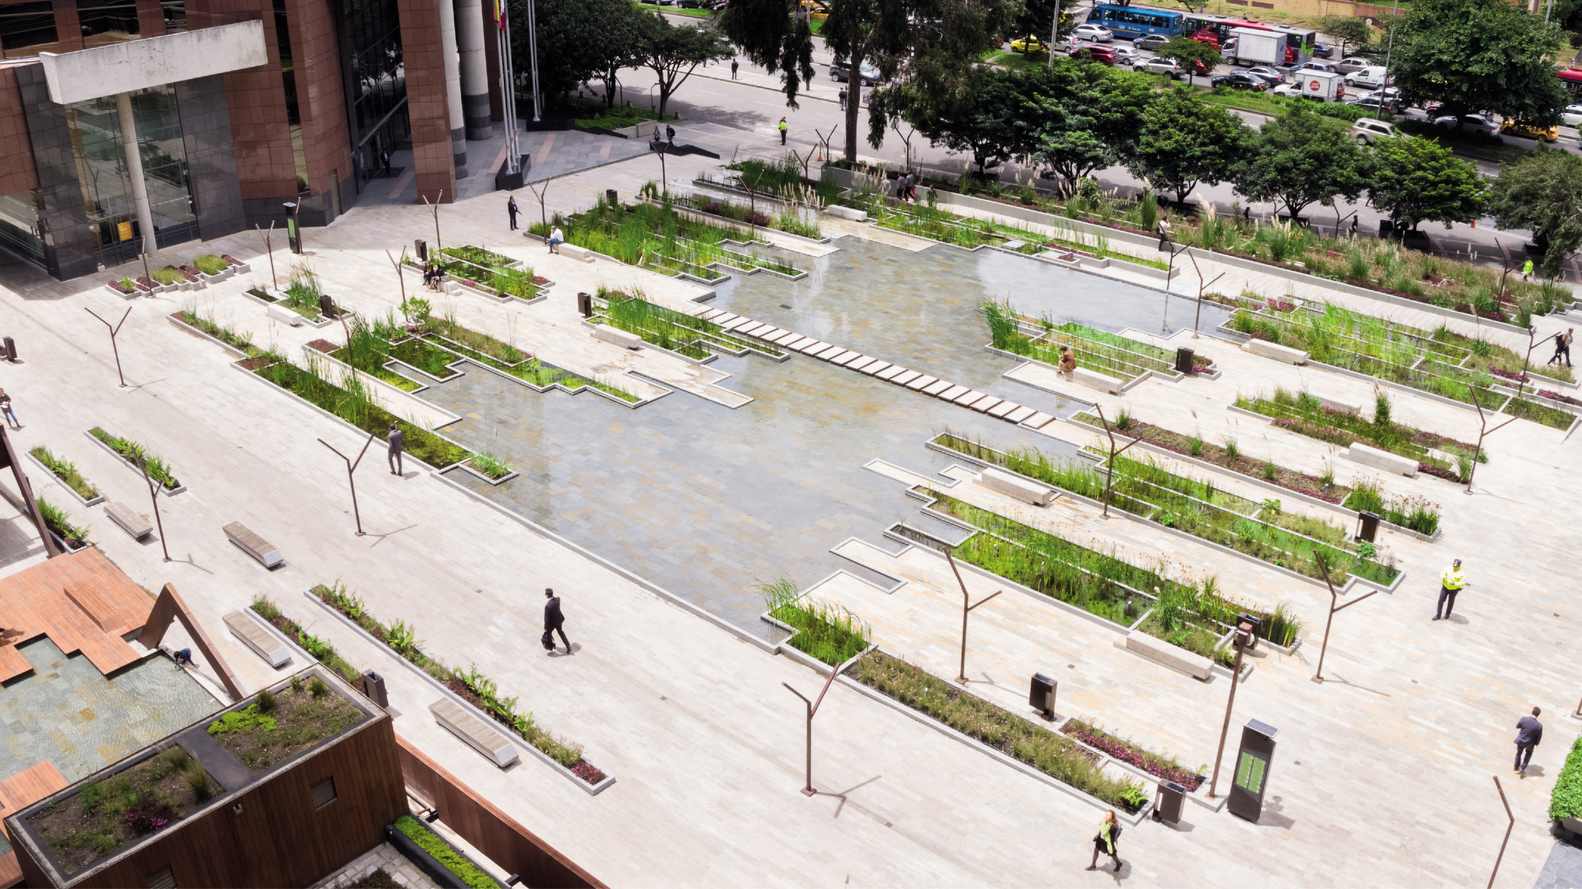 gallery of 100 public spaces  from tiny squares to urban parks